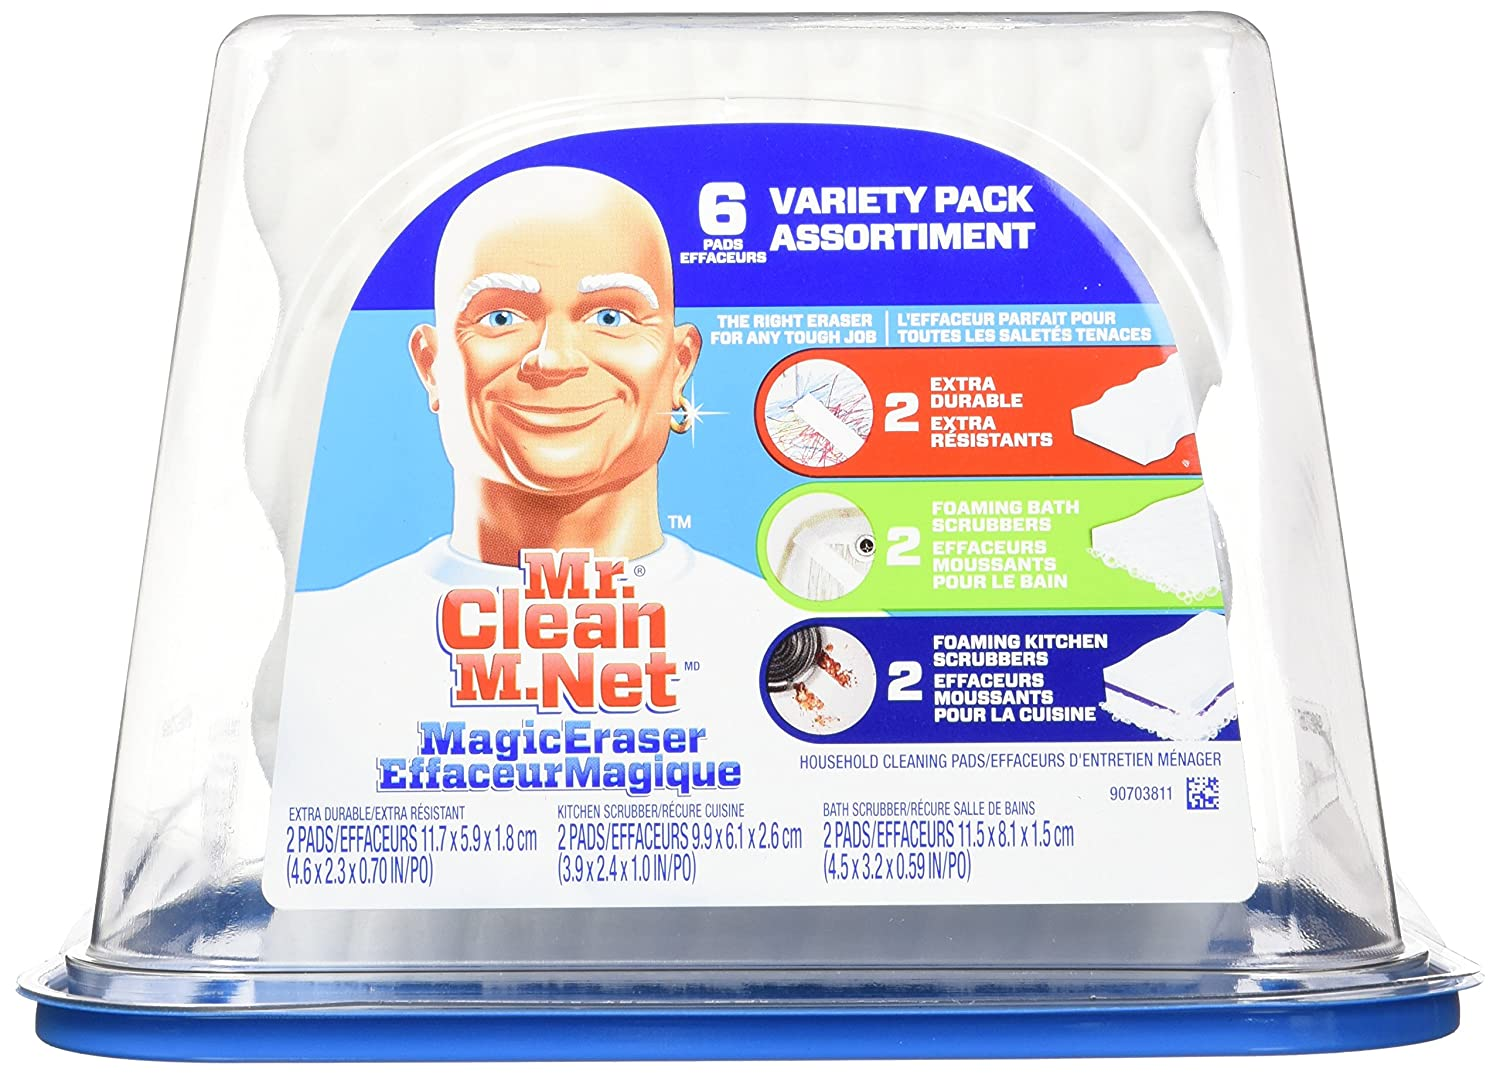 Mr. Clean Magic Eraser Variety Tub, 6 Count PG-4621